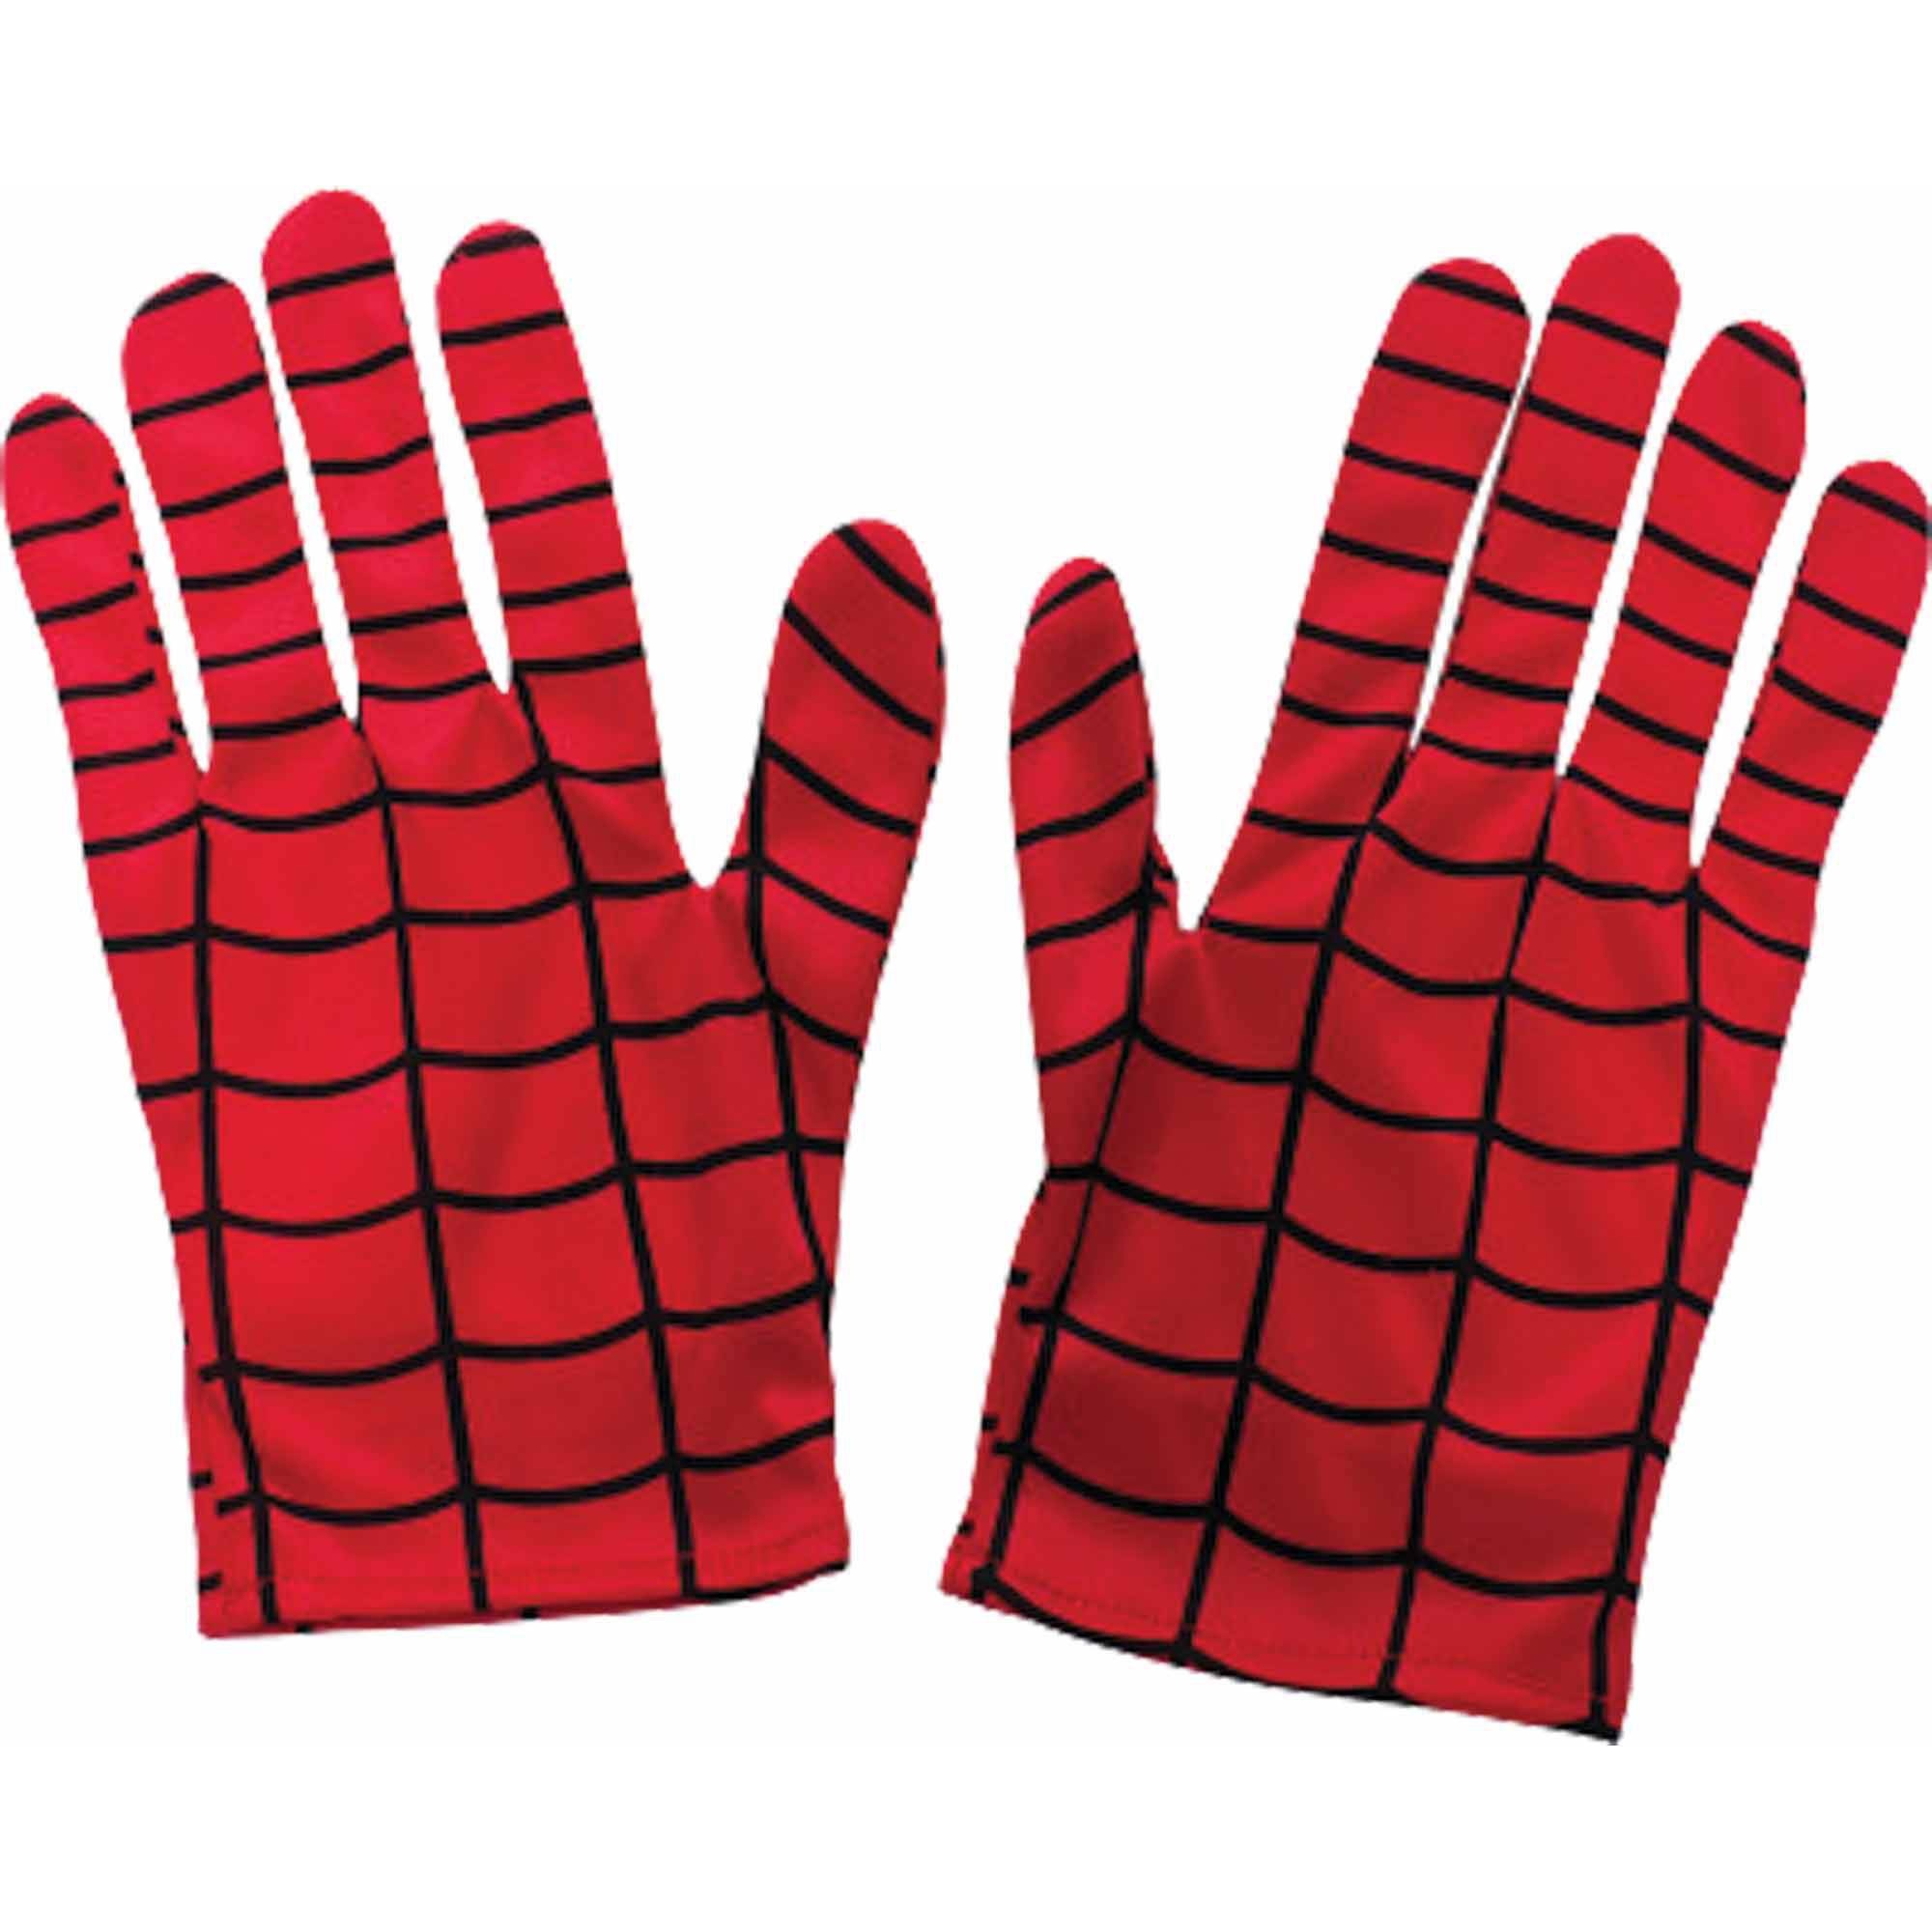 Spider-Man Adult Gloves Adult Halloween Accessory